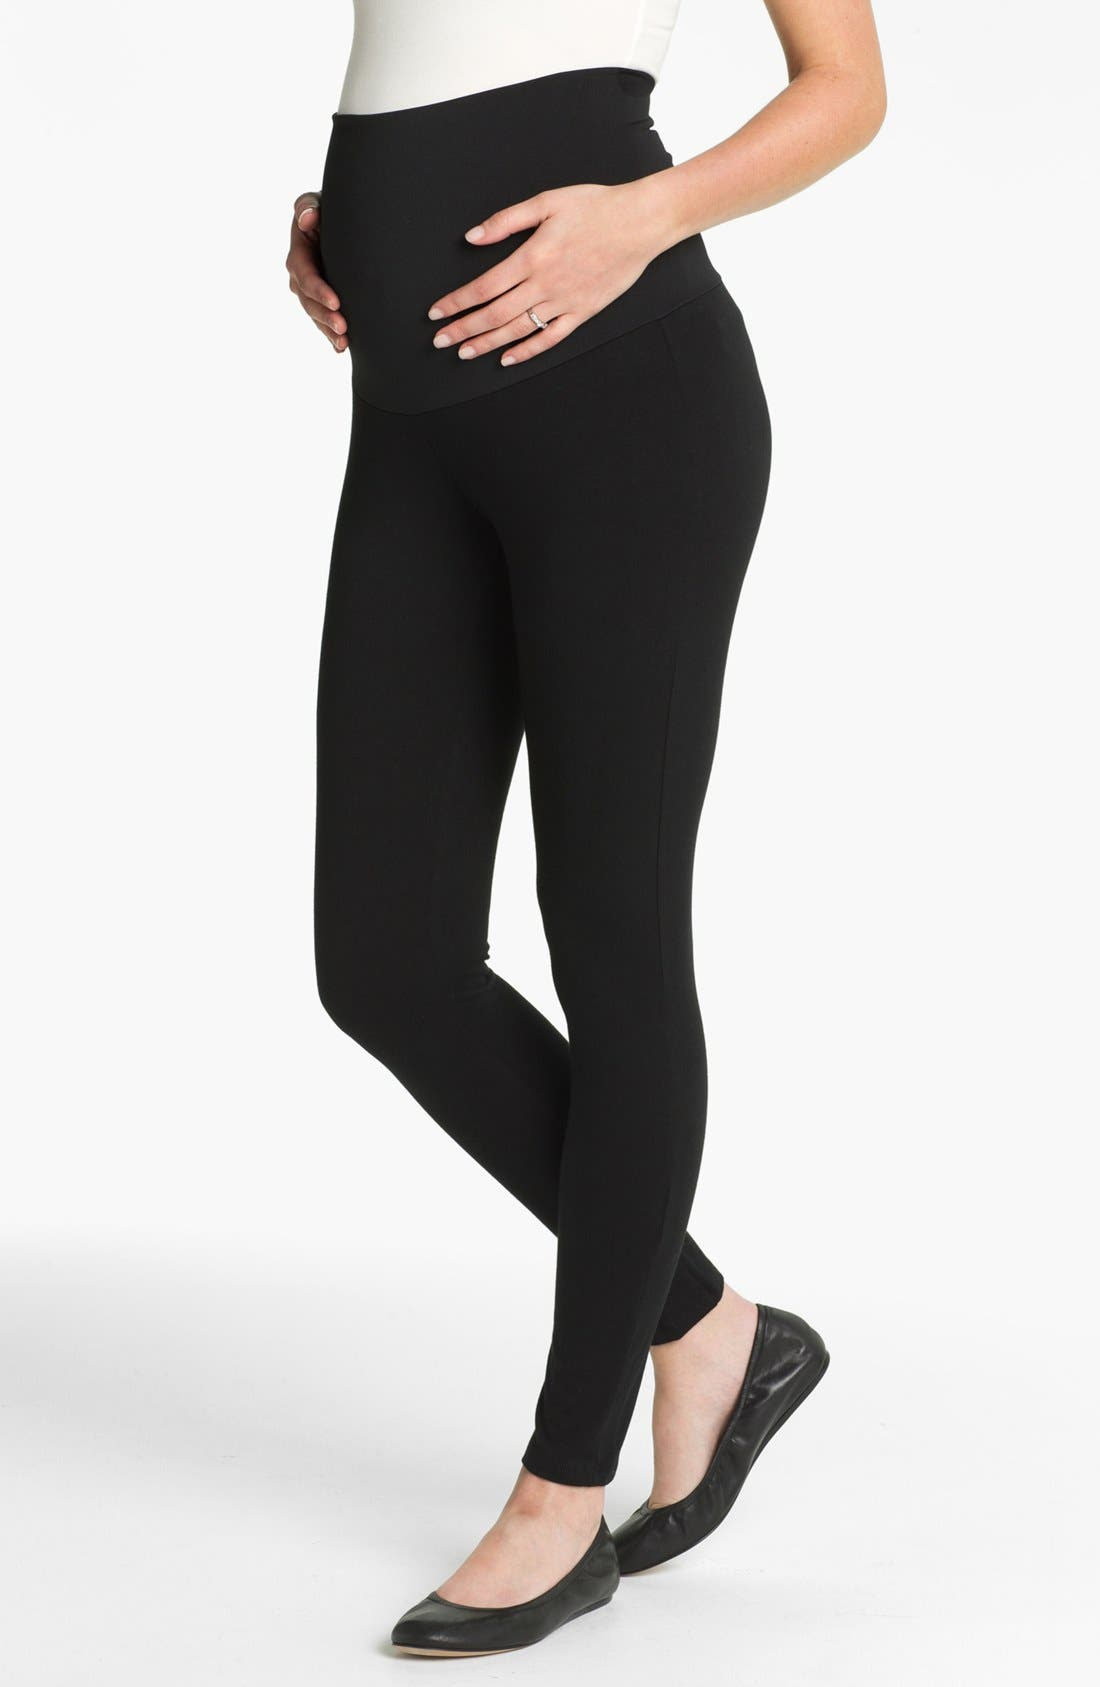 Belly Support Maternity Leggings,                             Main thumbnail 1, color,                             BLACK